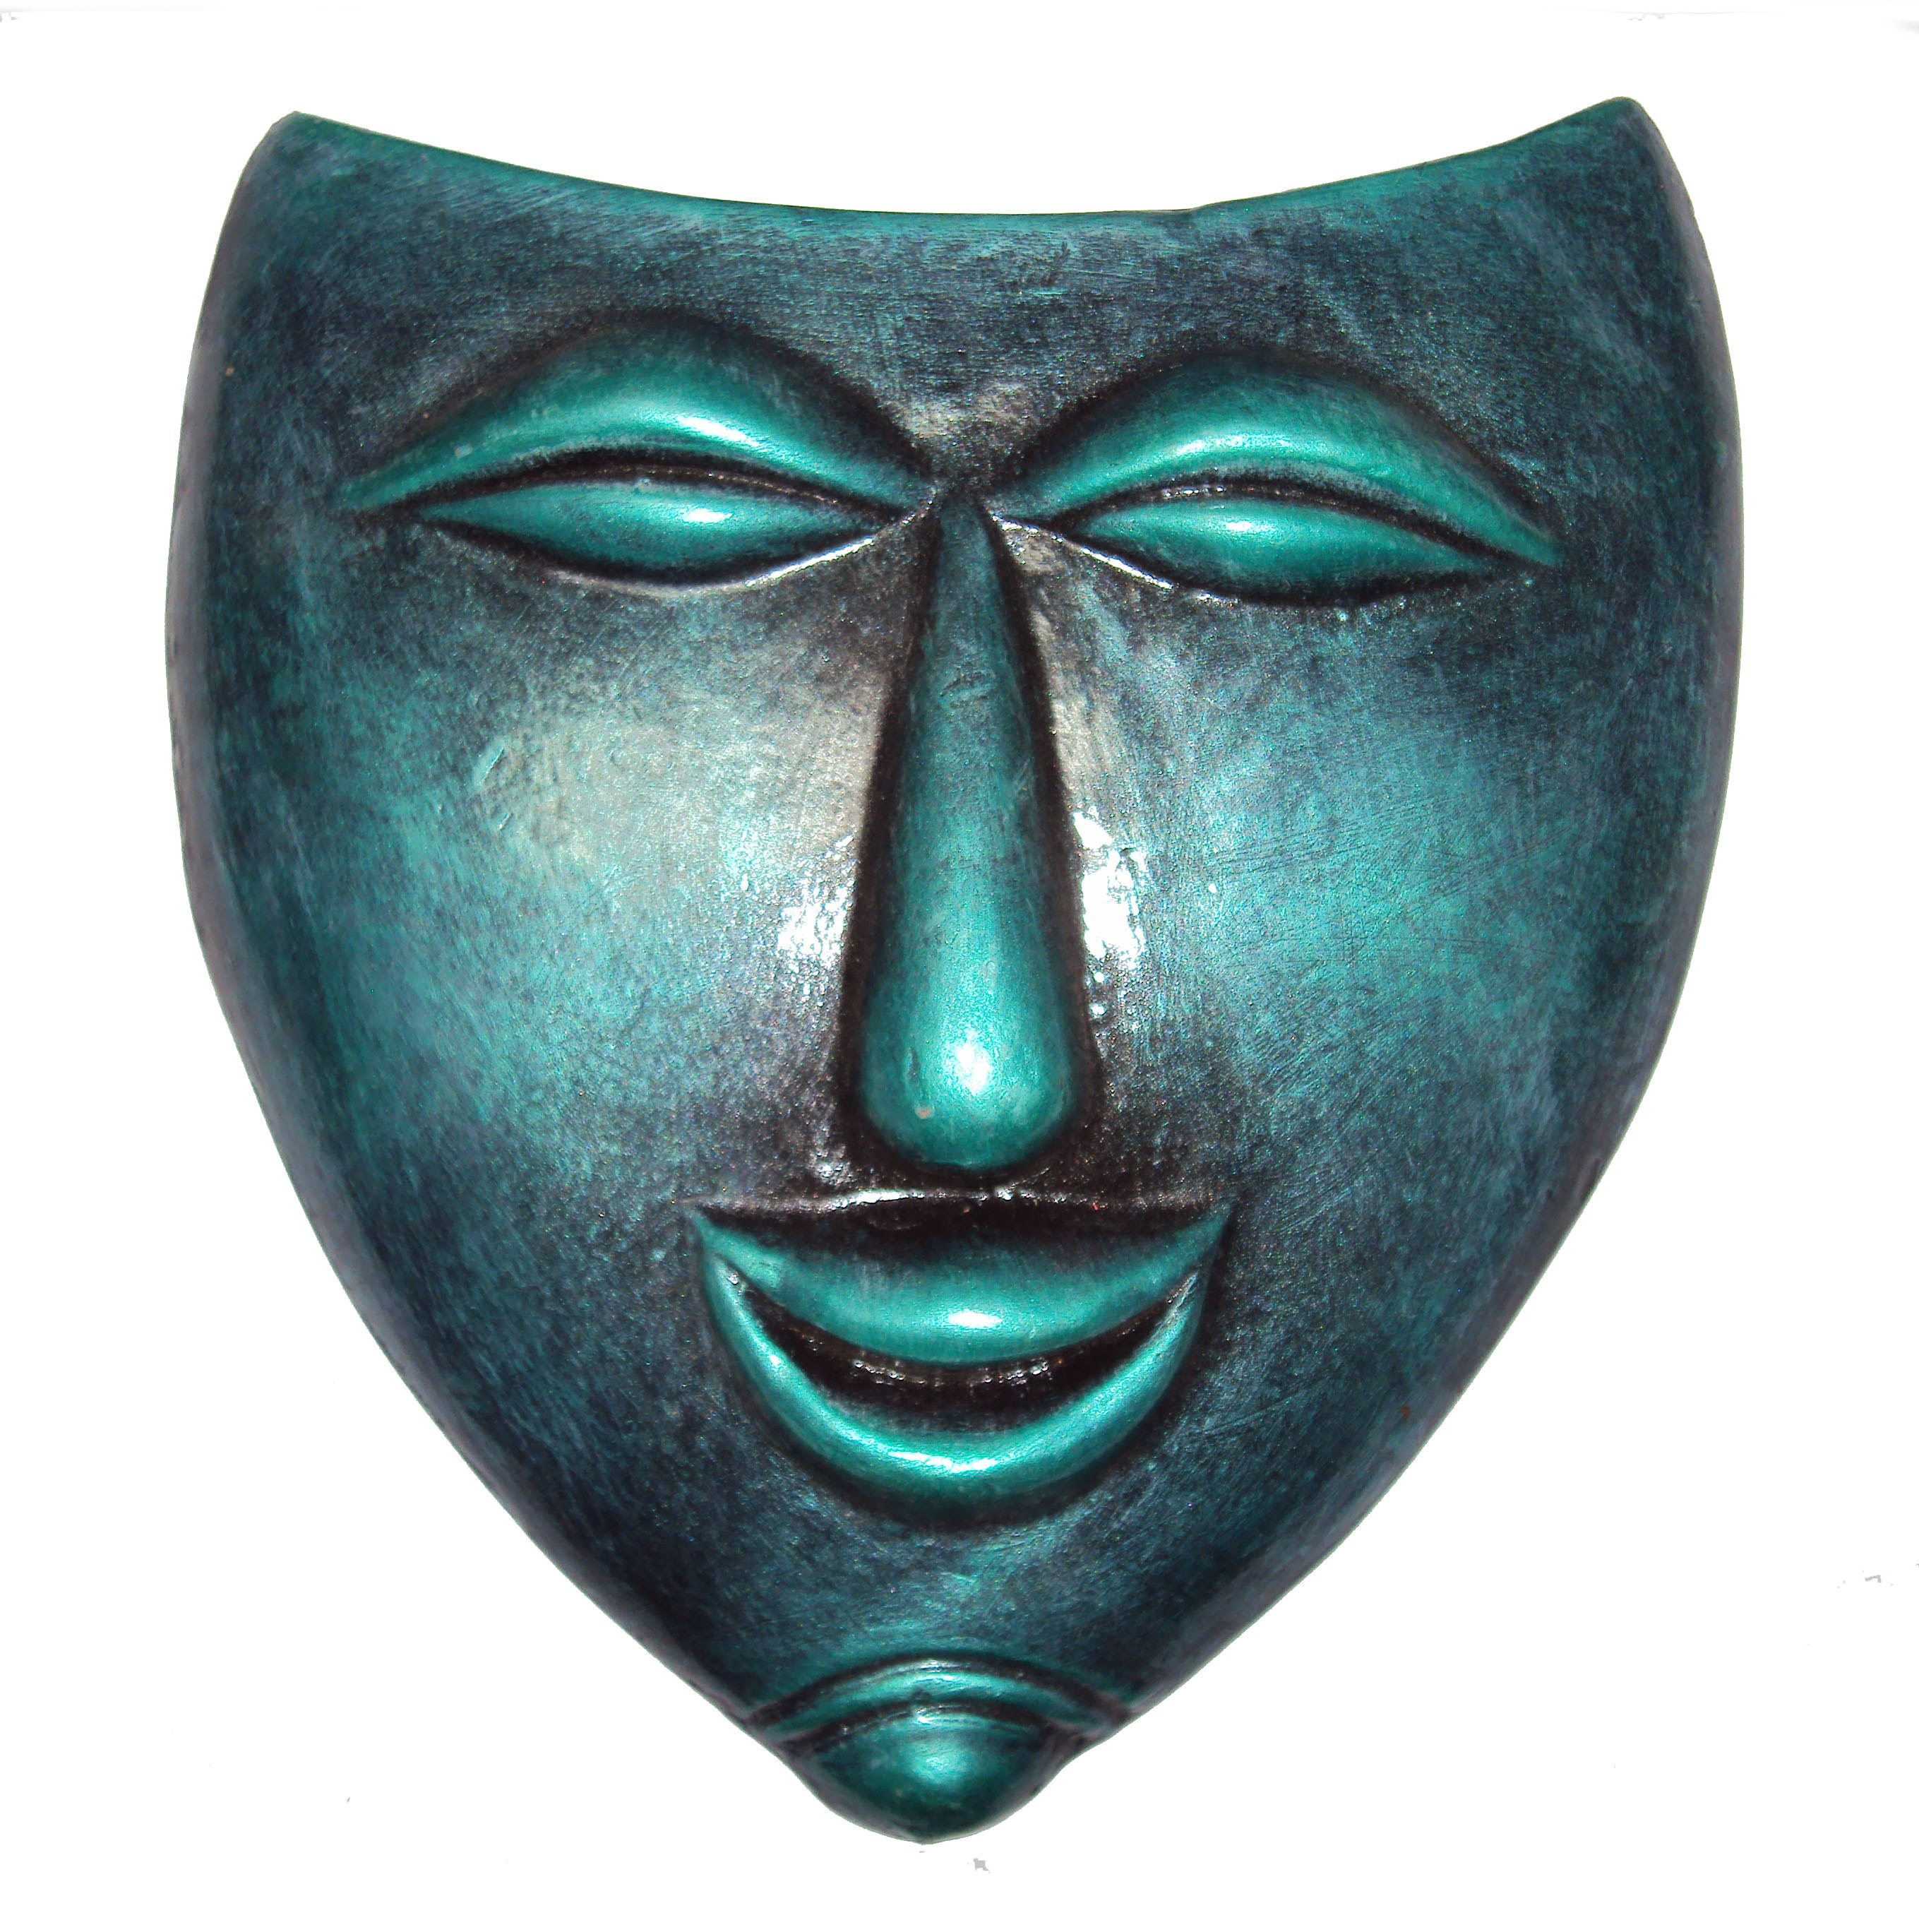 Decorative Wall Face Masks : Hand art home decorative terracotta wall hanging laughing